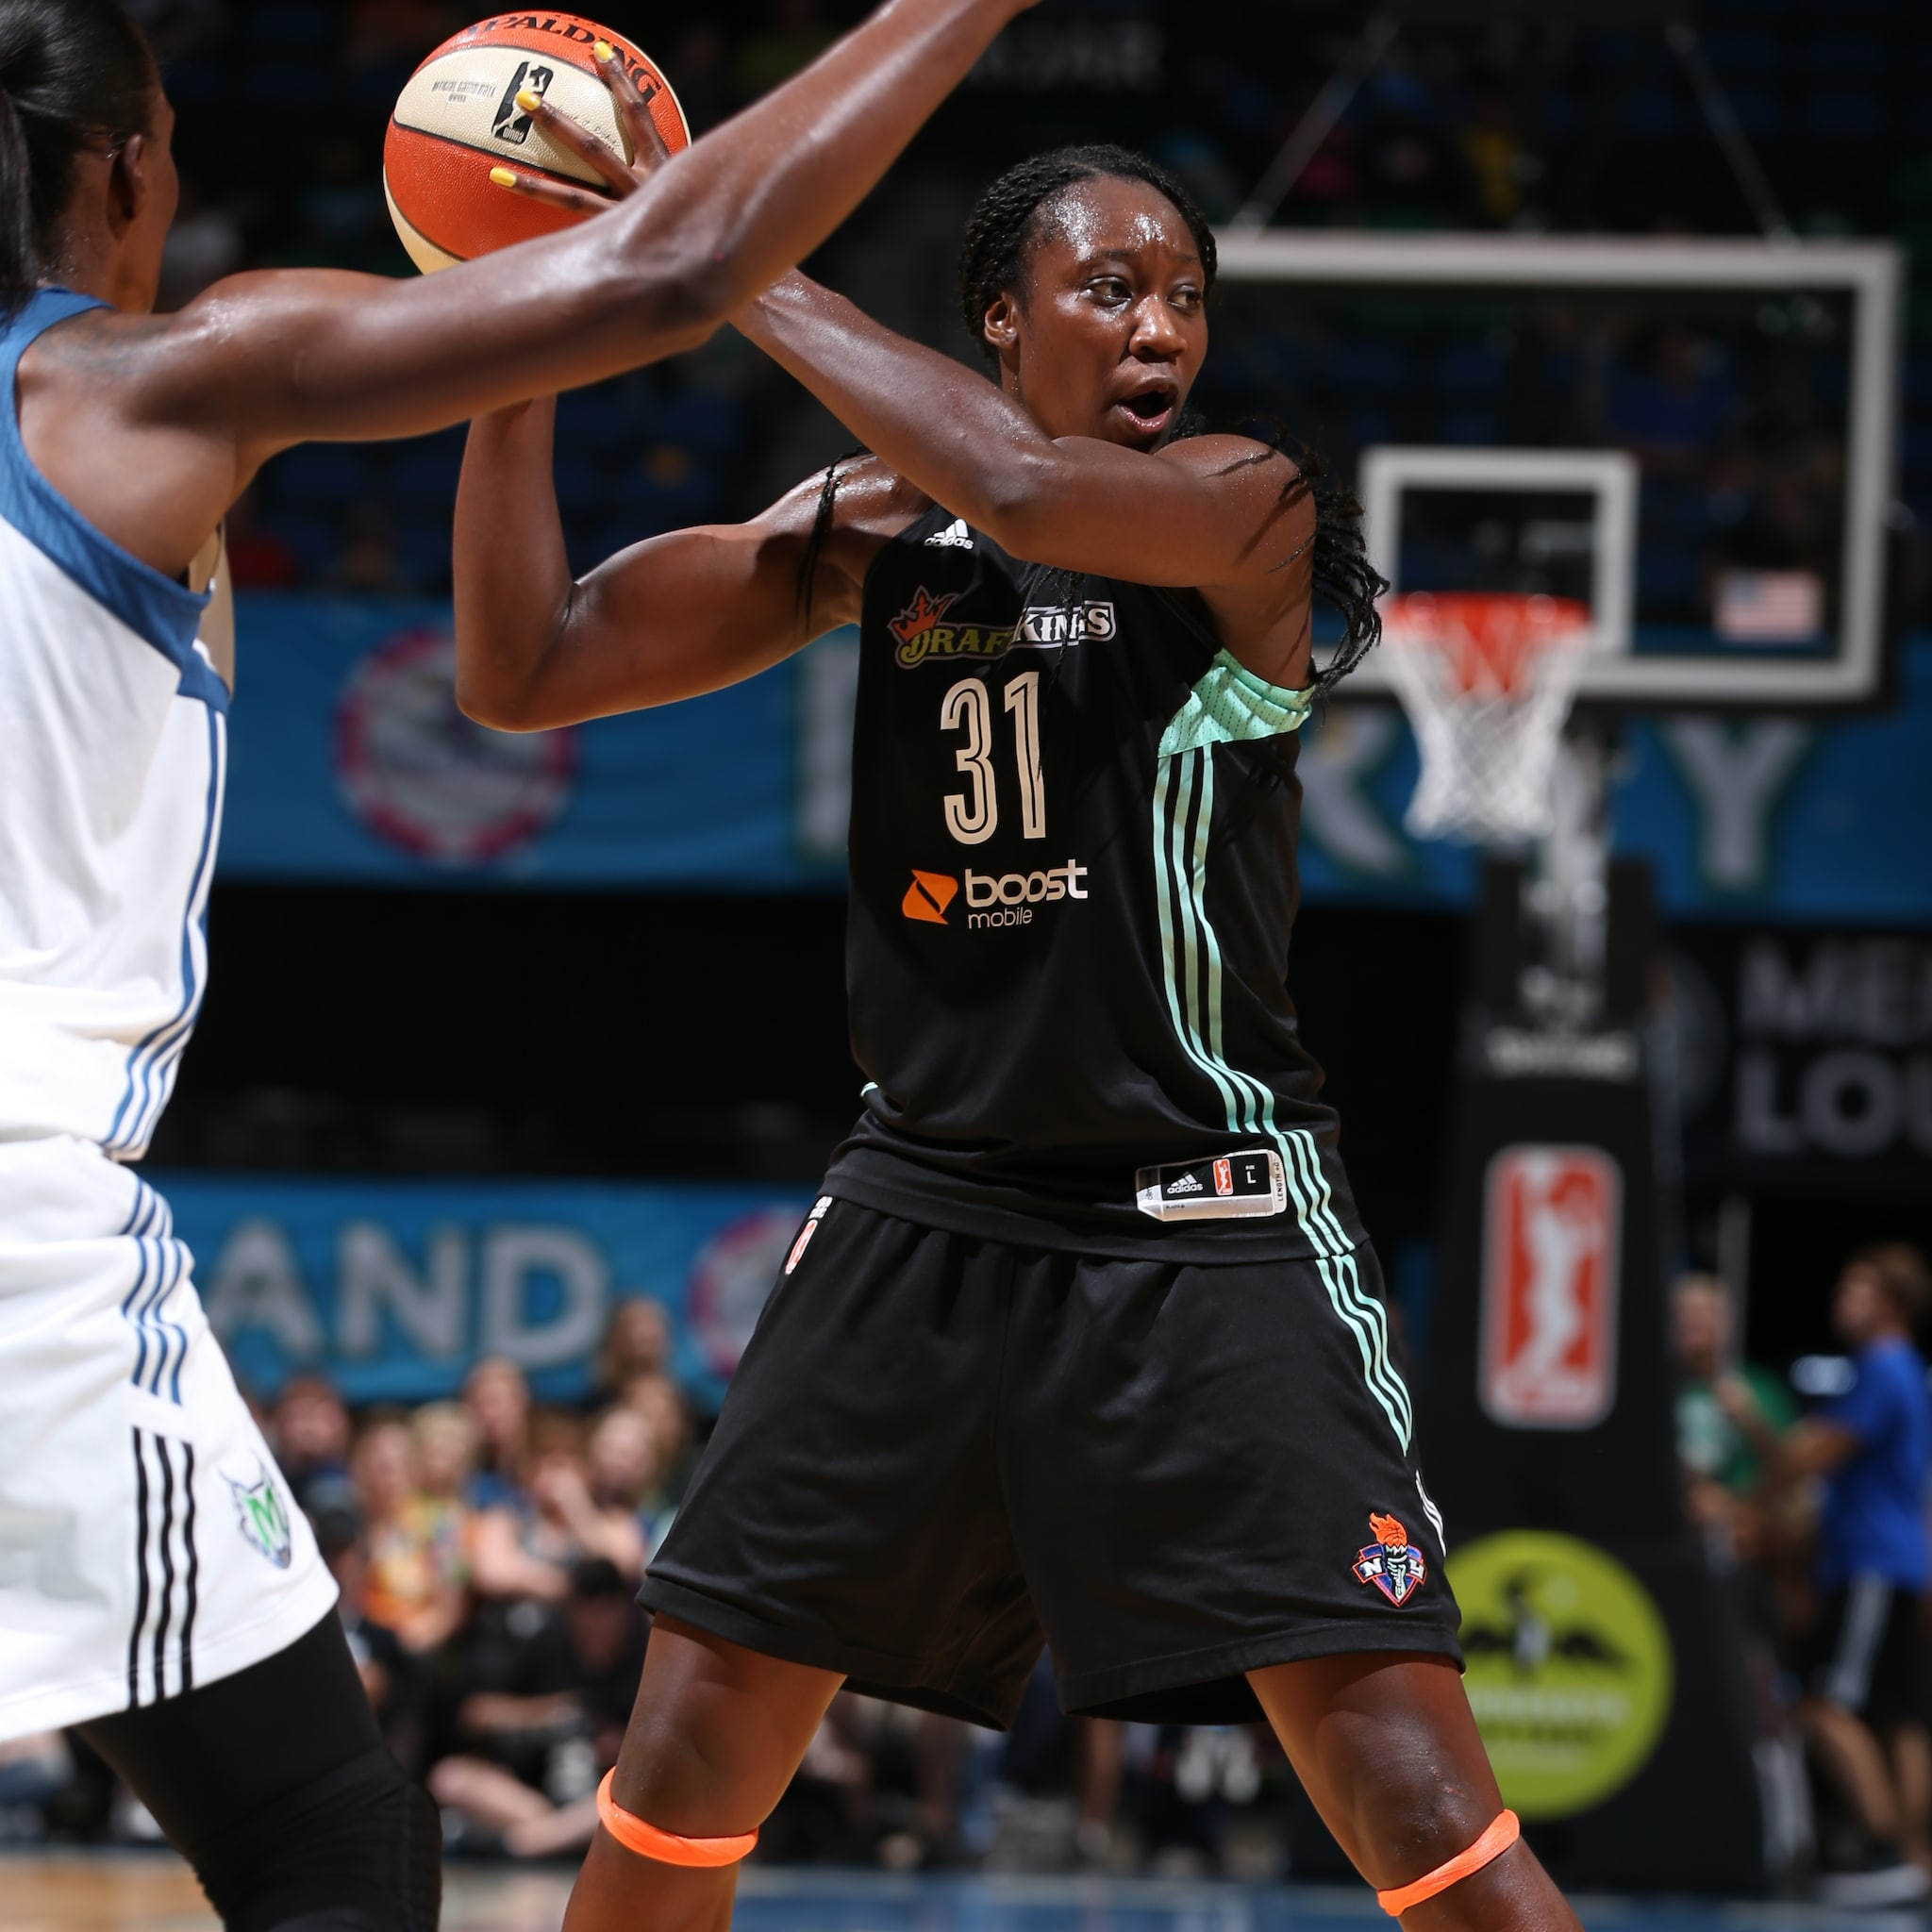 Entering the contest as the league's fourth-leading scorer, Tina Charles flexed her scoring muscle against Minnesota, finishing with 18 points, 14 rebounds, two steals and three blocked shots.